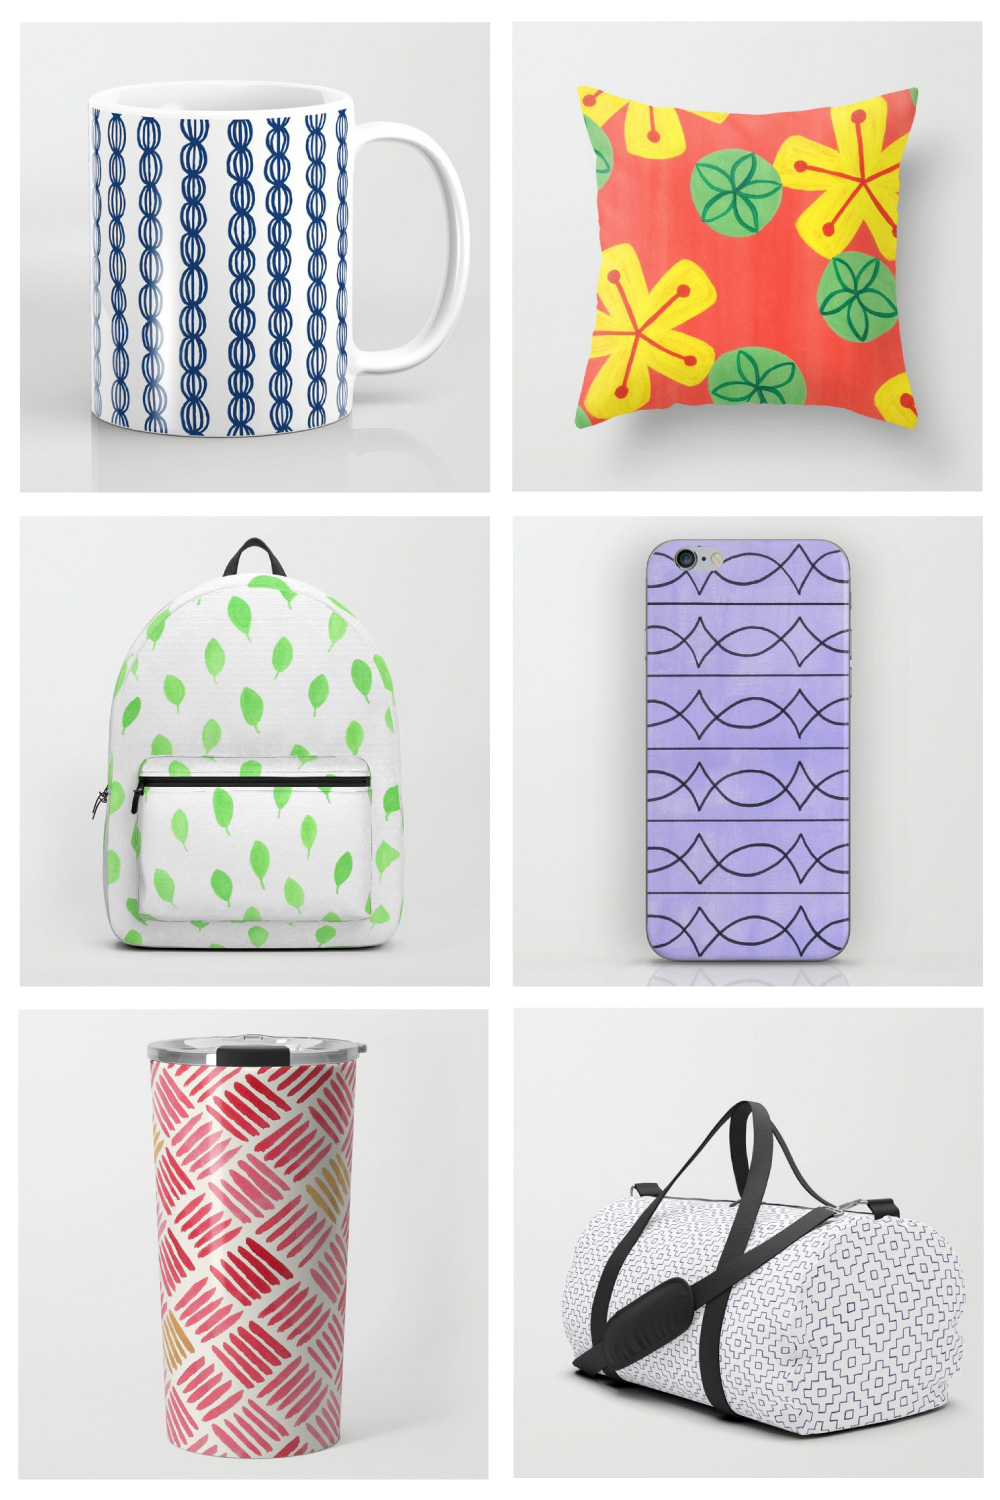 Sally Cummings Designs - Society 6 store preview, October 2018